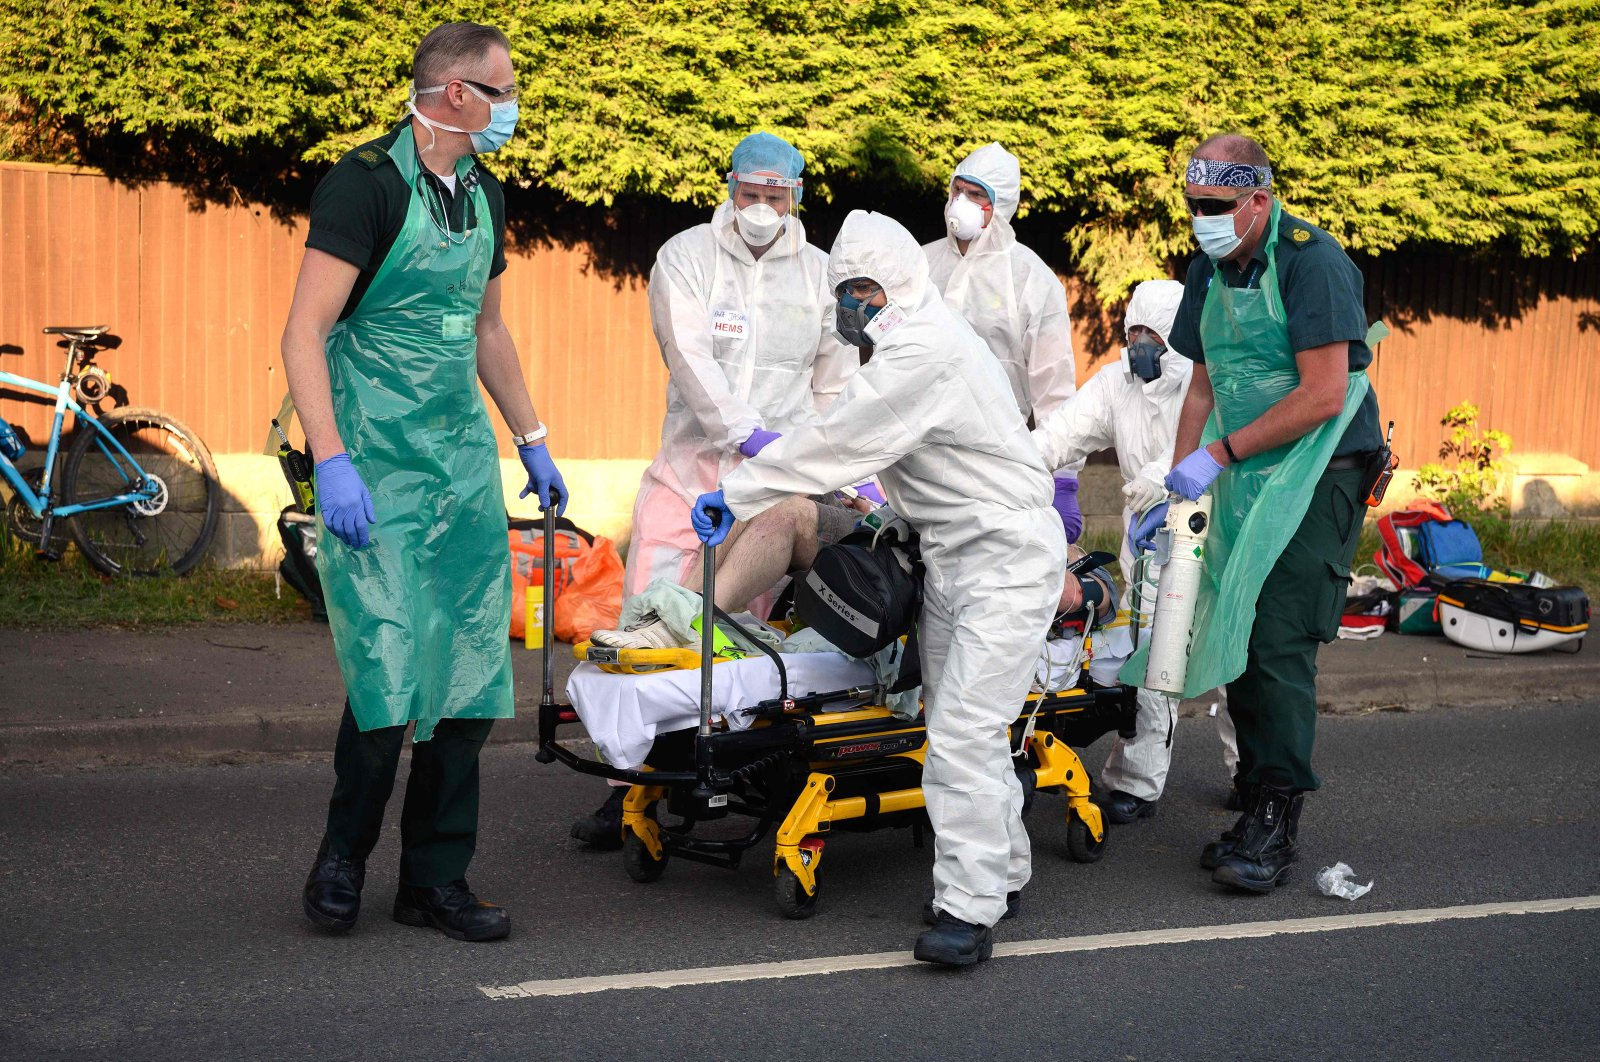 Ambulance and air ambulance crews wearing personal protective equipment (PPE) work to stabilize a patient with possible COVID-19 symptoms who was found unconscious having suffered a cardiac arrest while cycling in Botley, near Southampton, southern England, May 6, 2020. (AFP Photo)